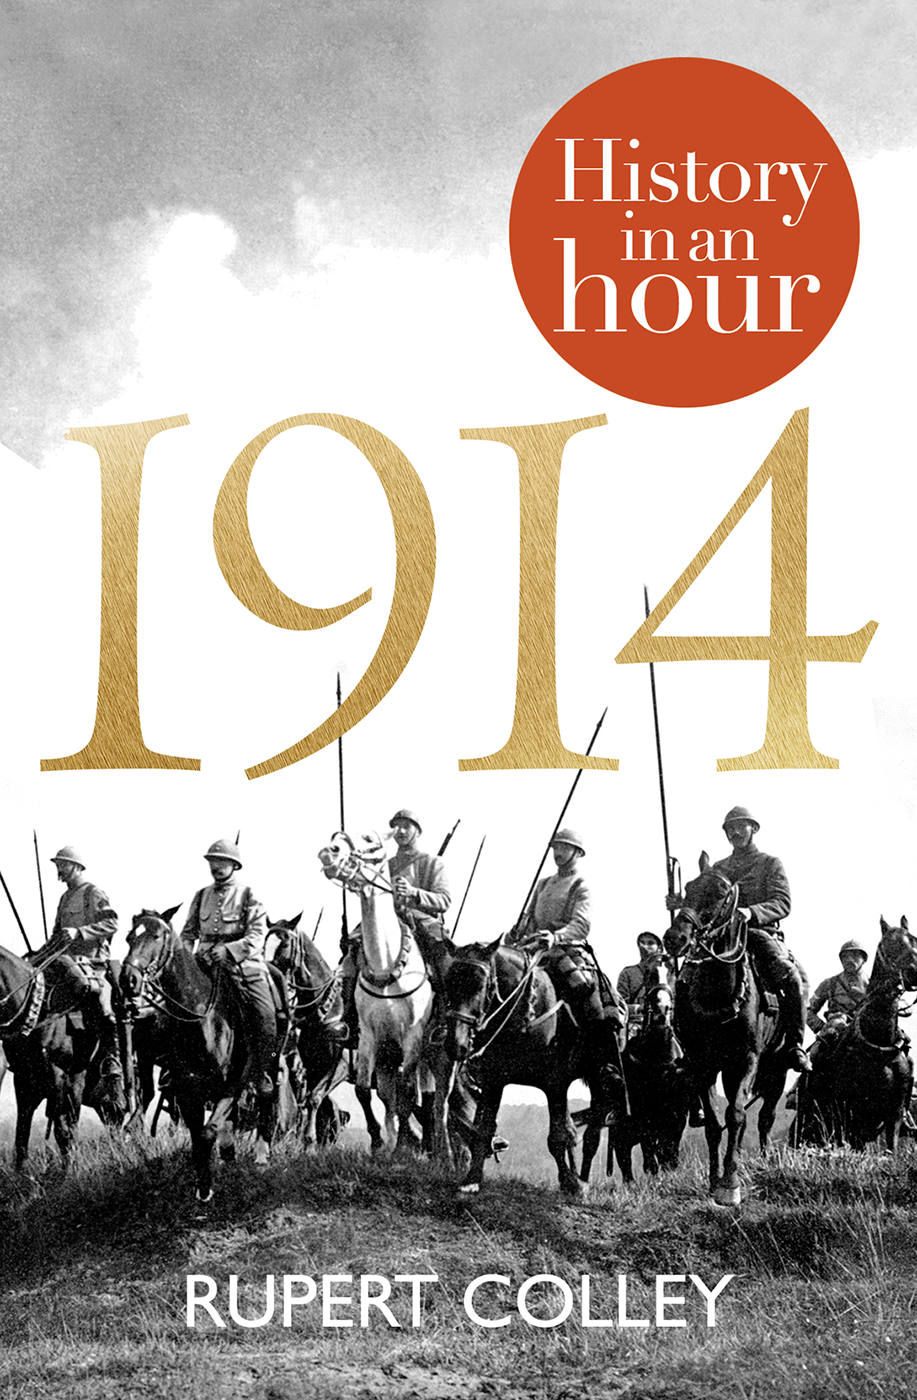 Rupert Colley - 1914: History in an Hour